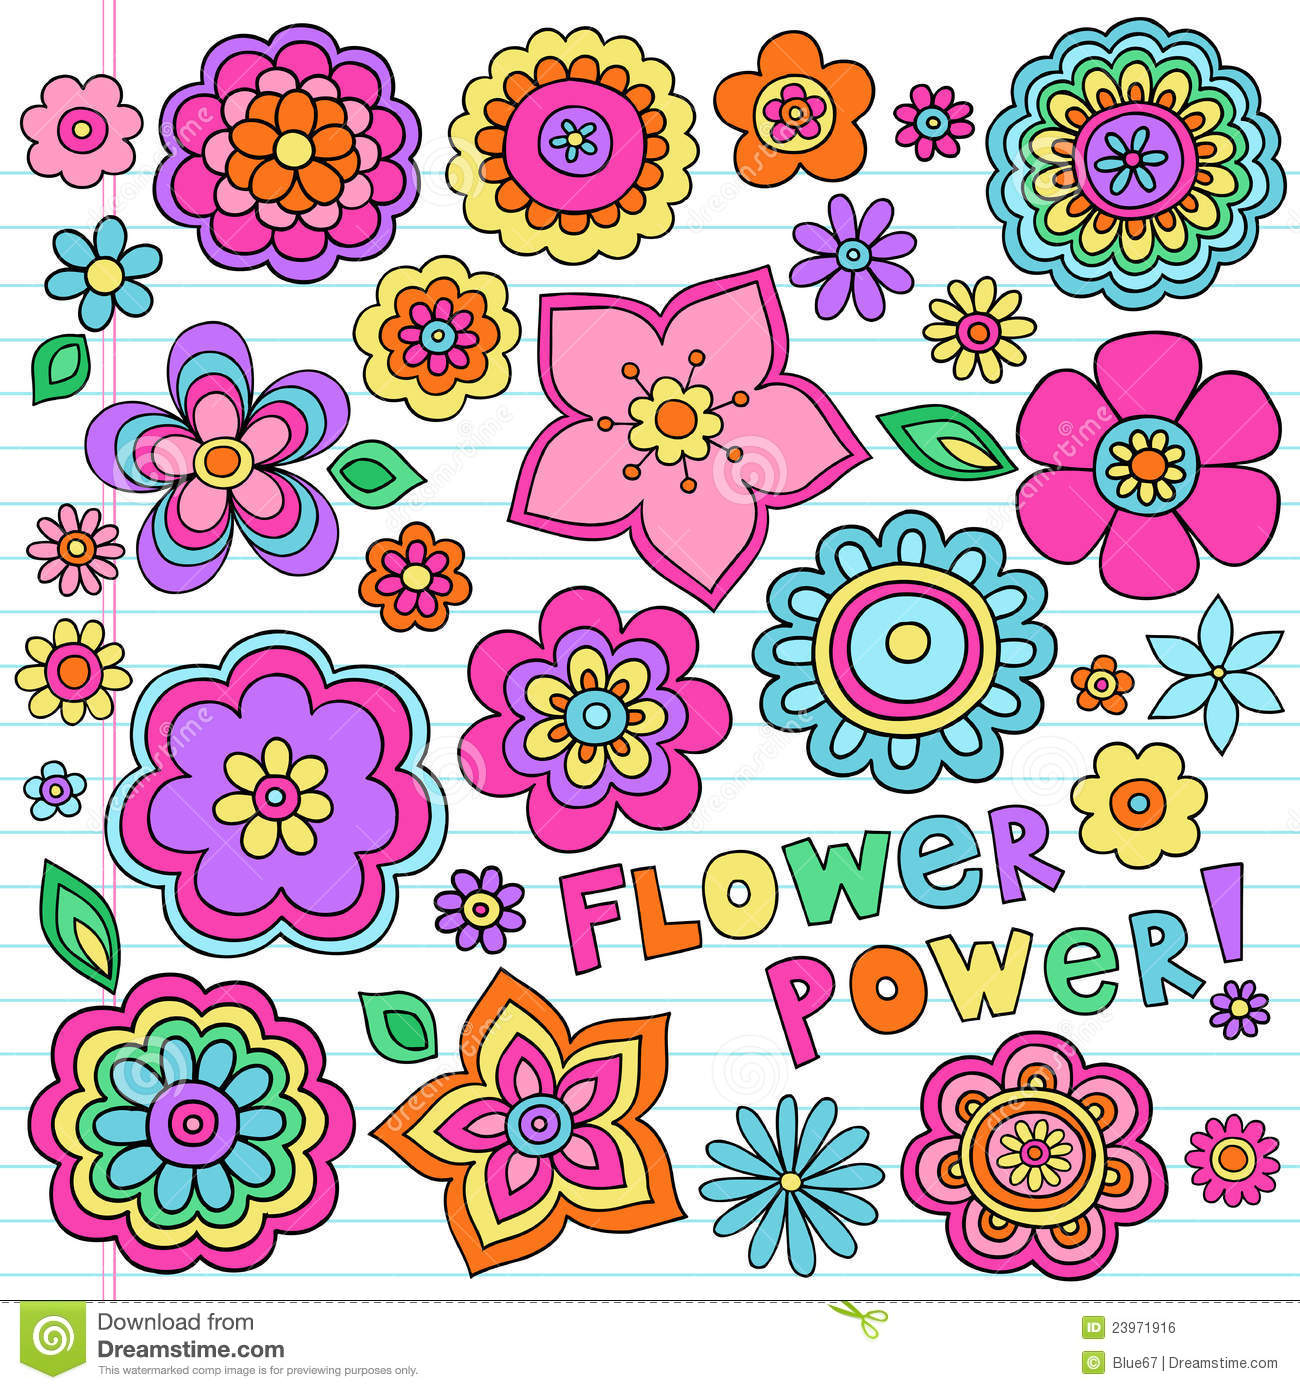 Psychedelic Flower Power Doodles Vector Set